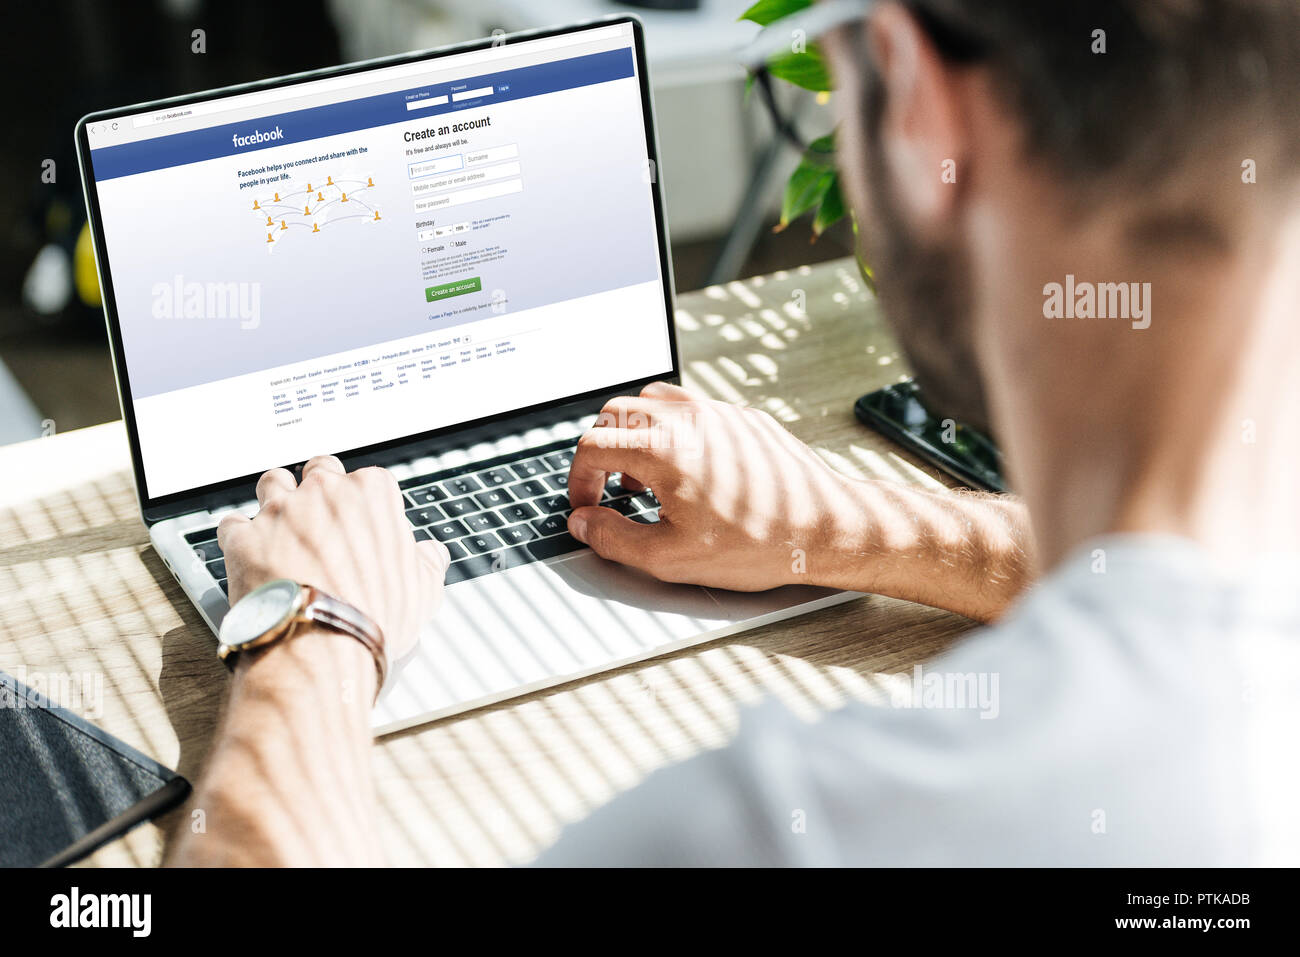 partial view of man using laptop with facebook website on